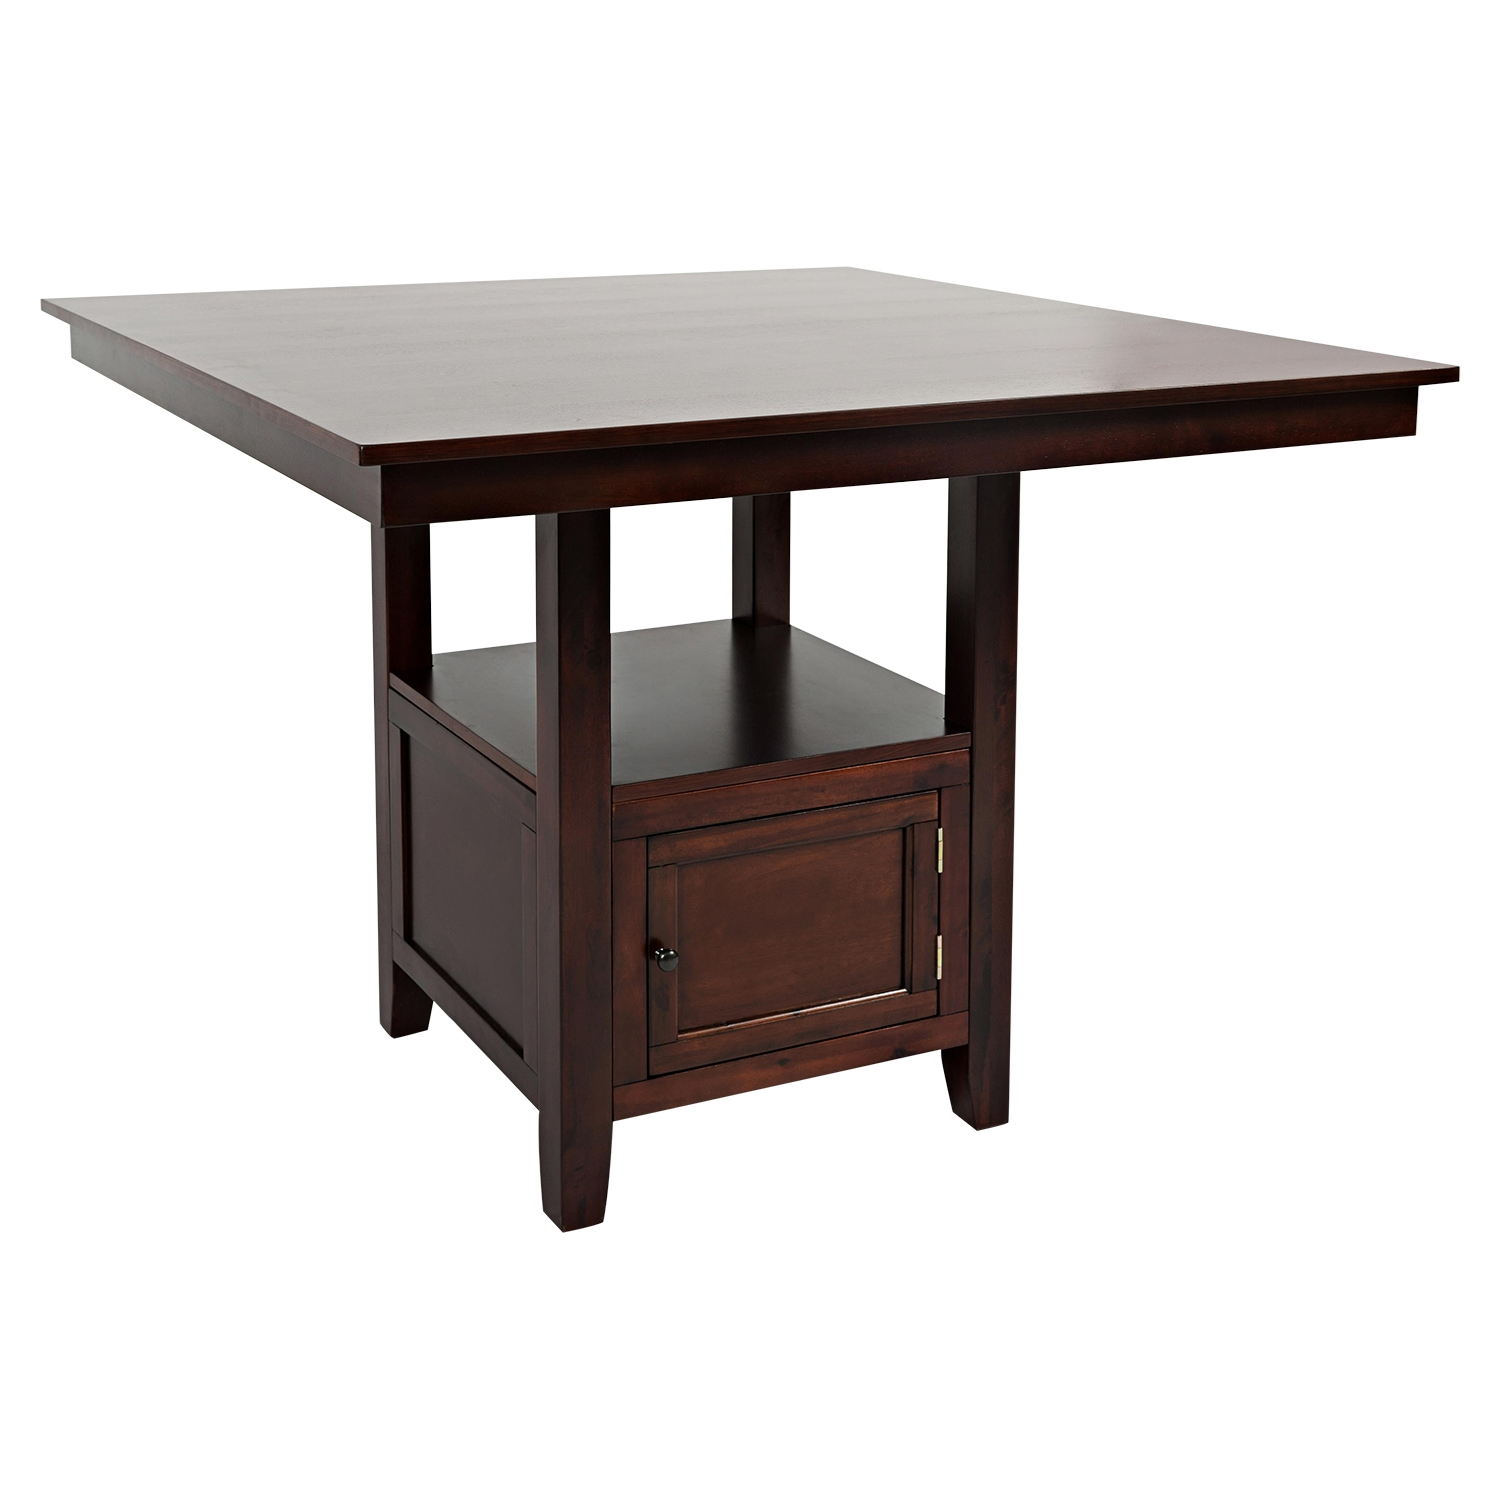 Tessa Chianti Counter Height Table - Storage Base, Brown - JOFR-933-48TBKT